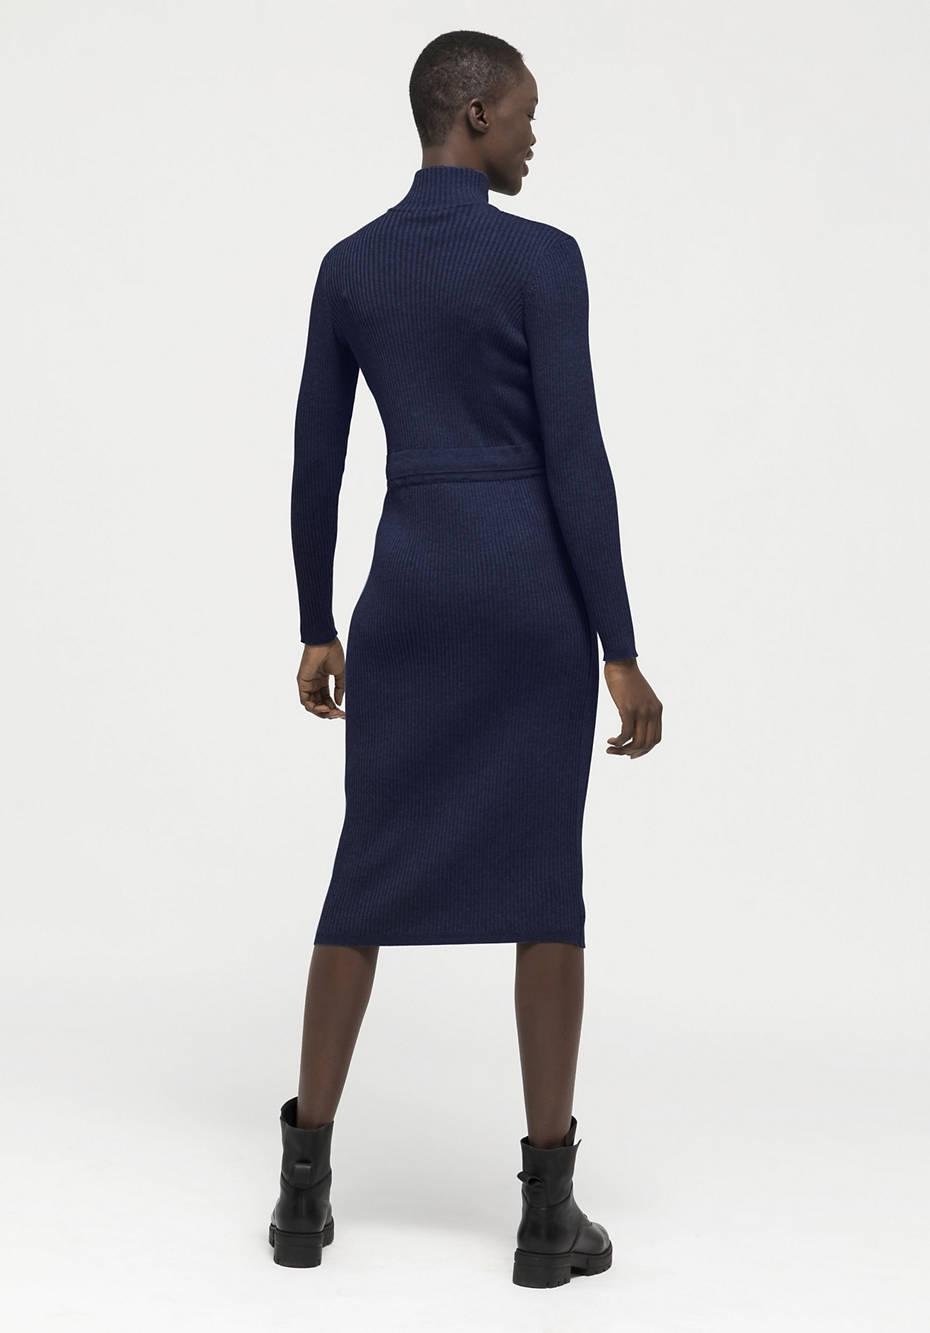 Knitted dress made of organic cotton and organic new wool